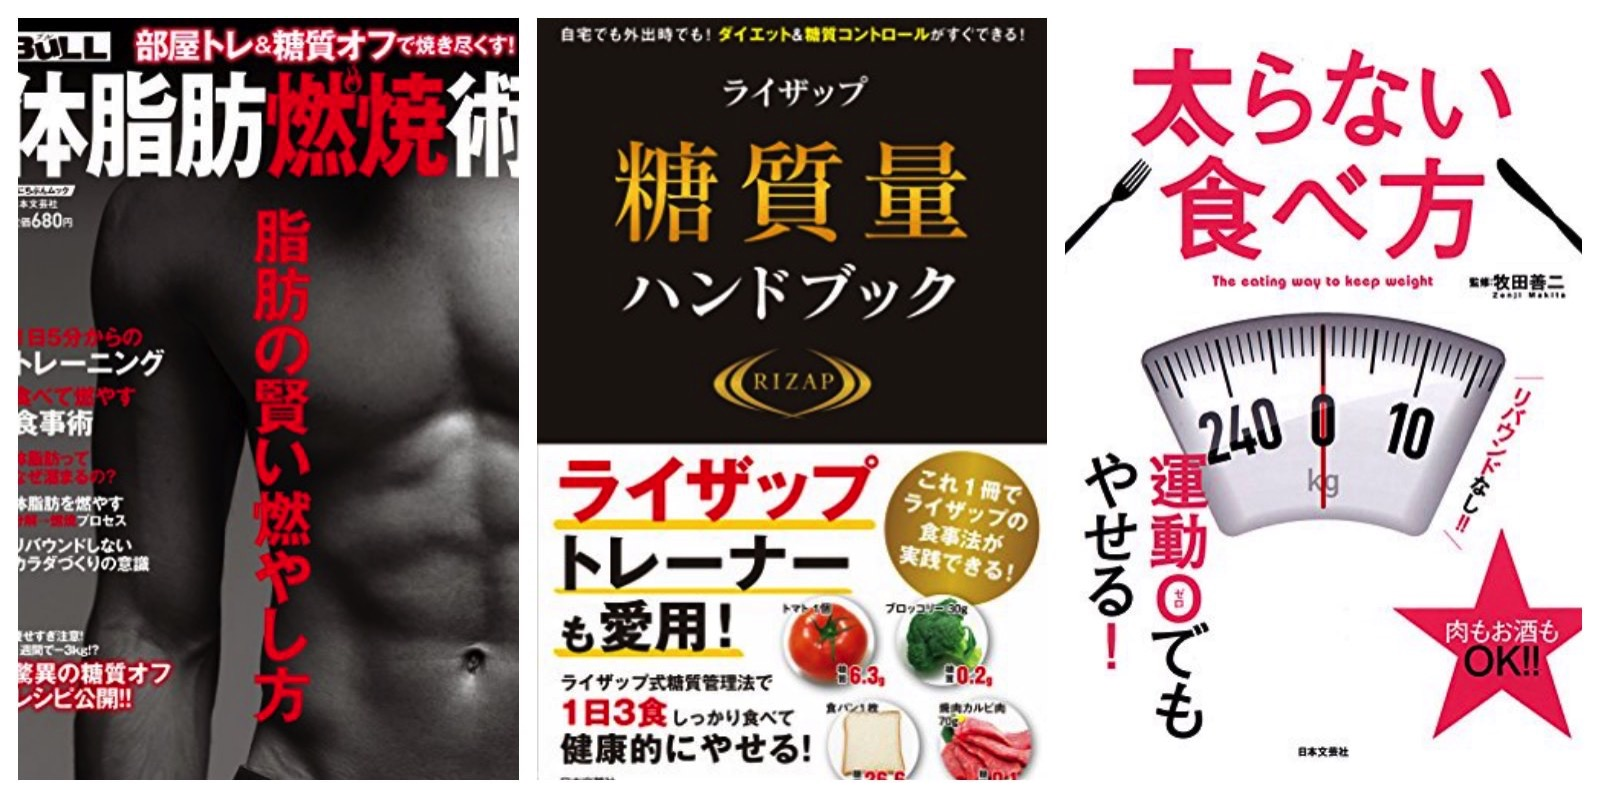 Health and diet books on sale